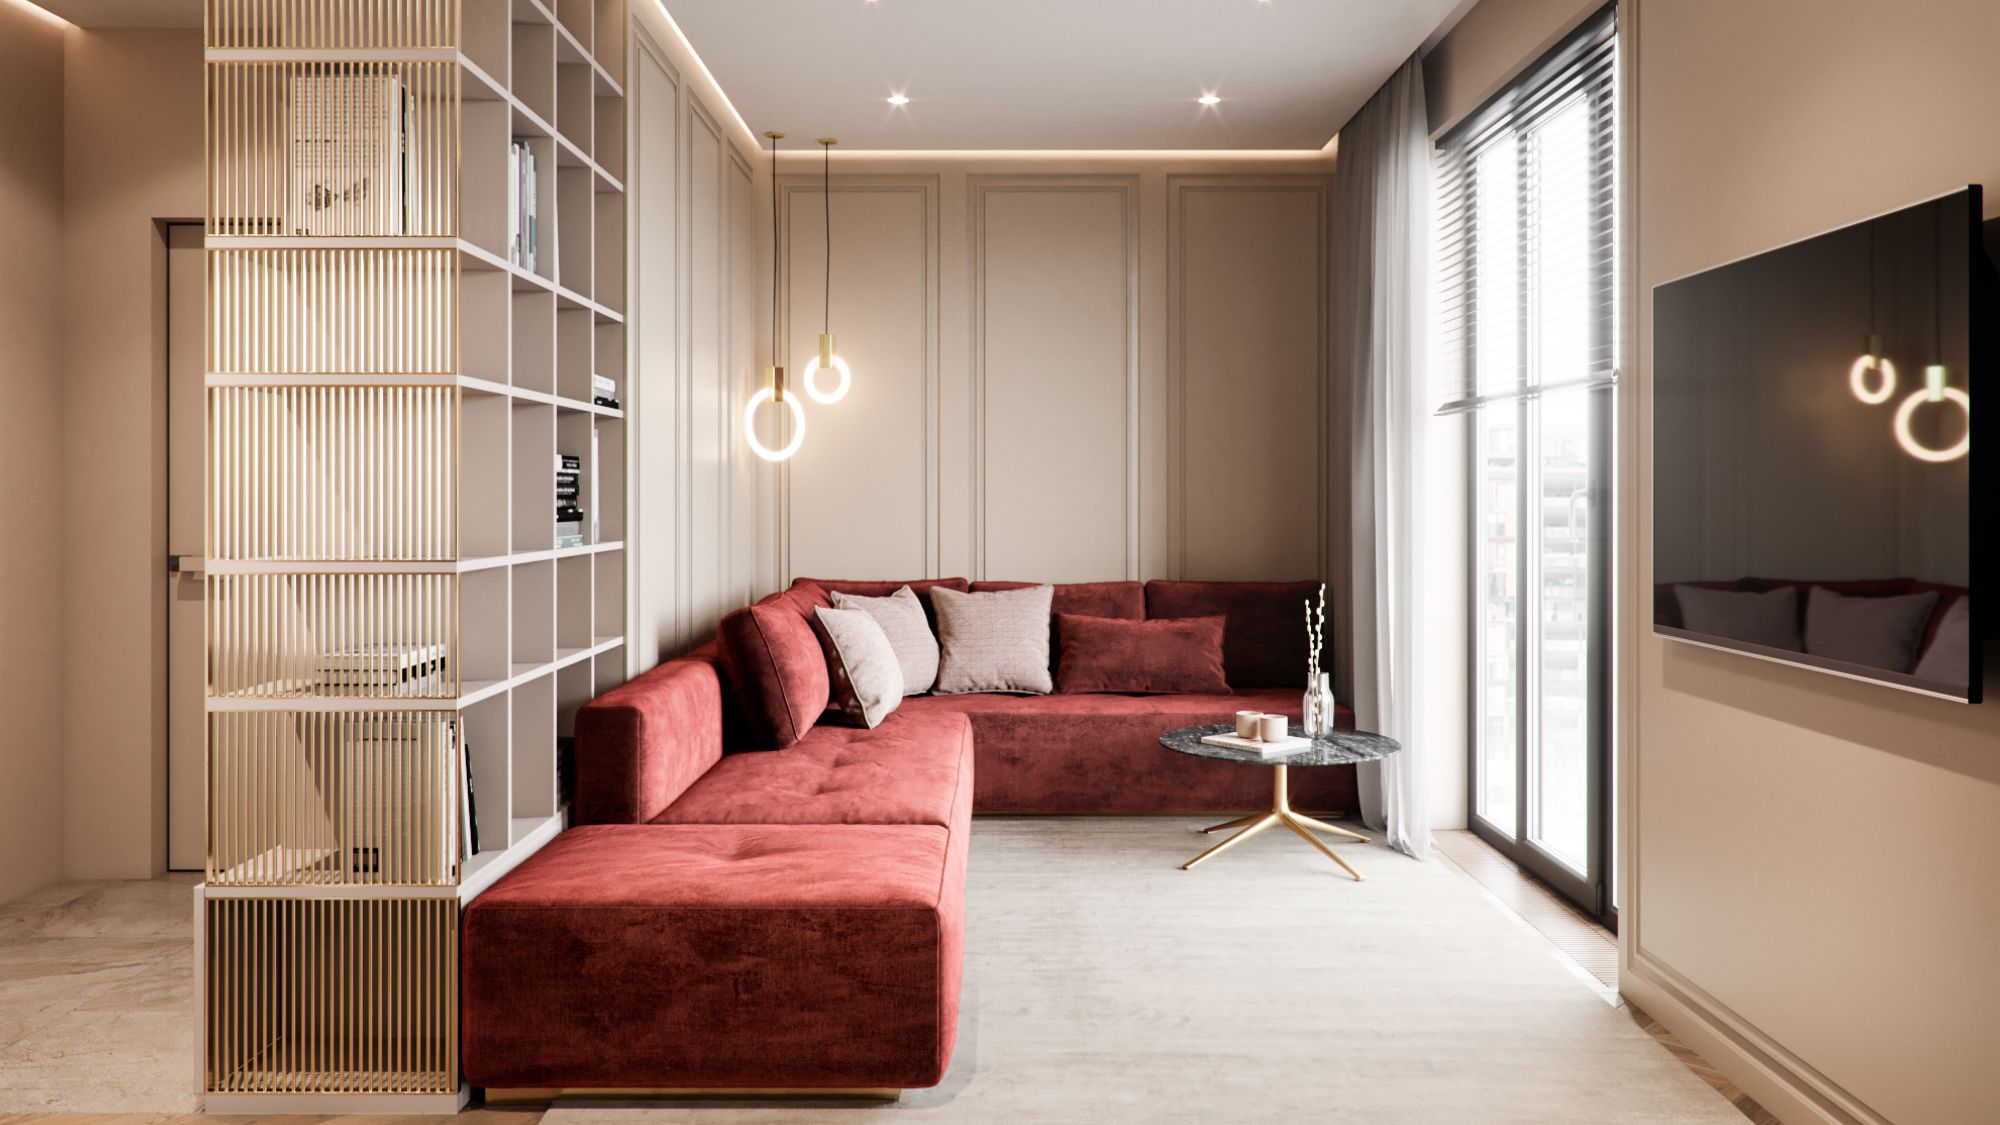 Interior design of apartment modern apartment with classic elements in soft light colors